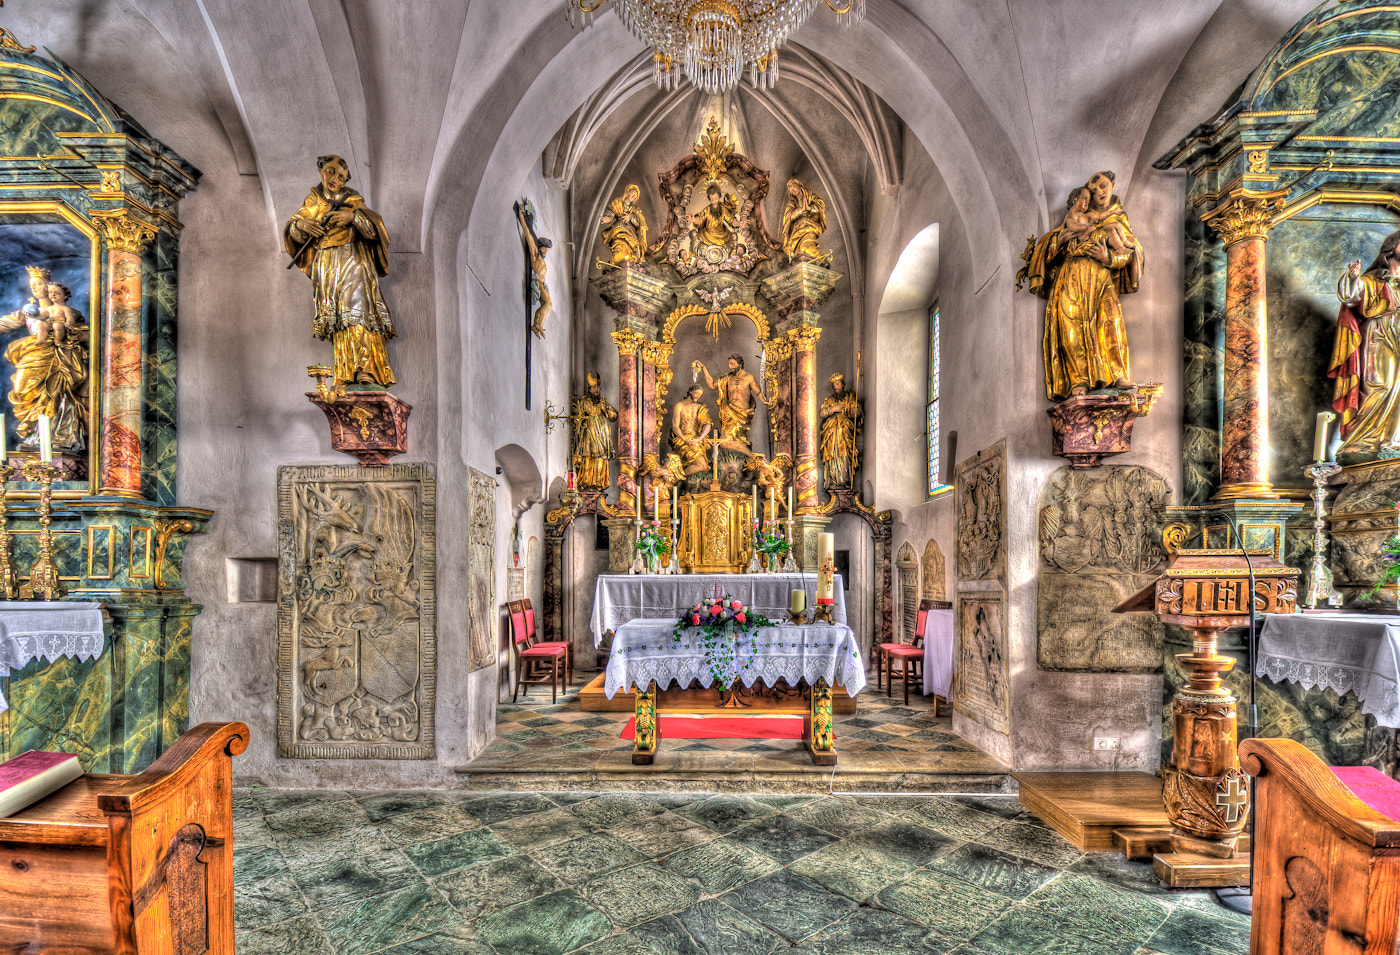 Photograph Inside the church by Paul Werner Suess on 500px